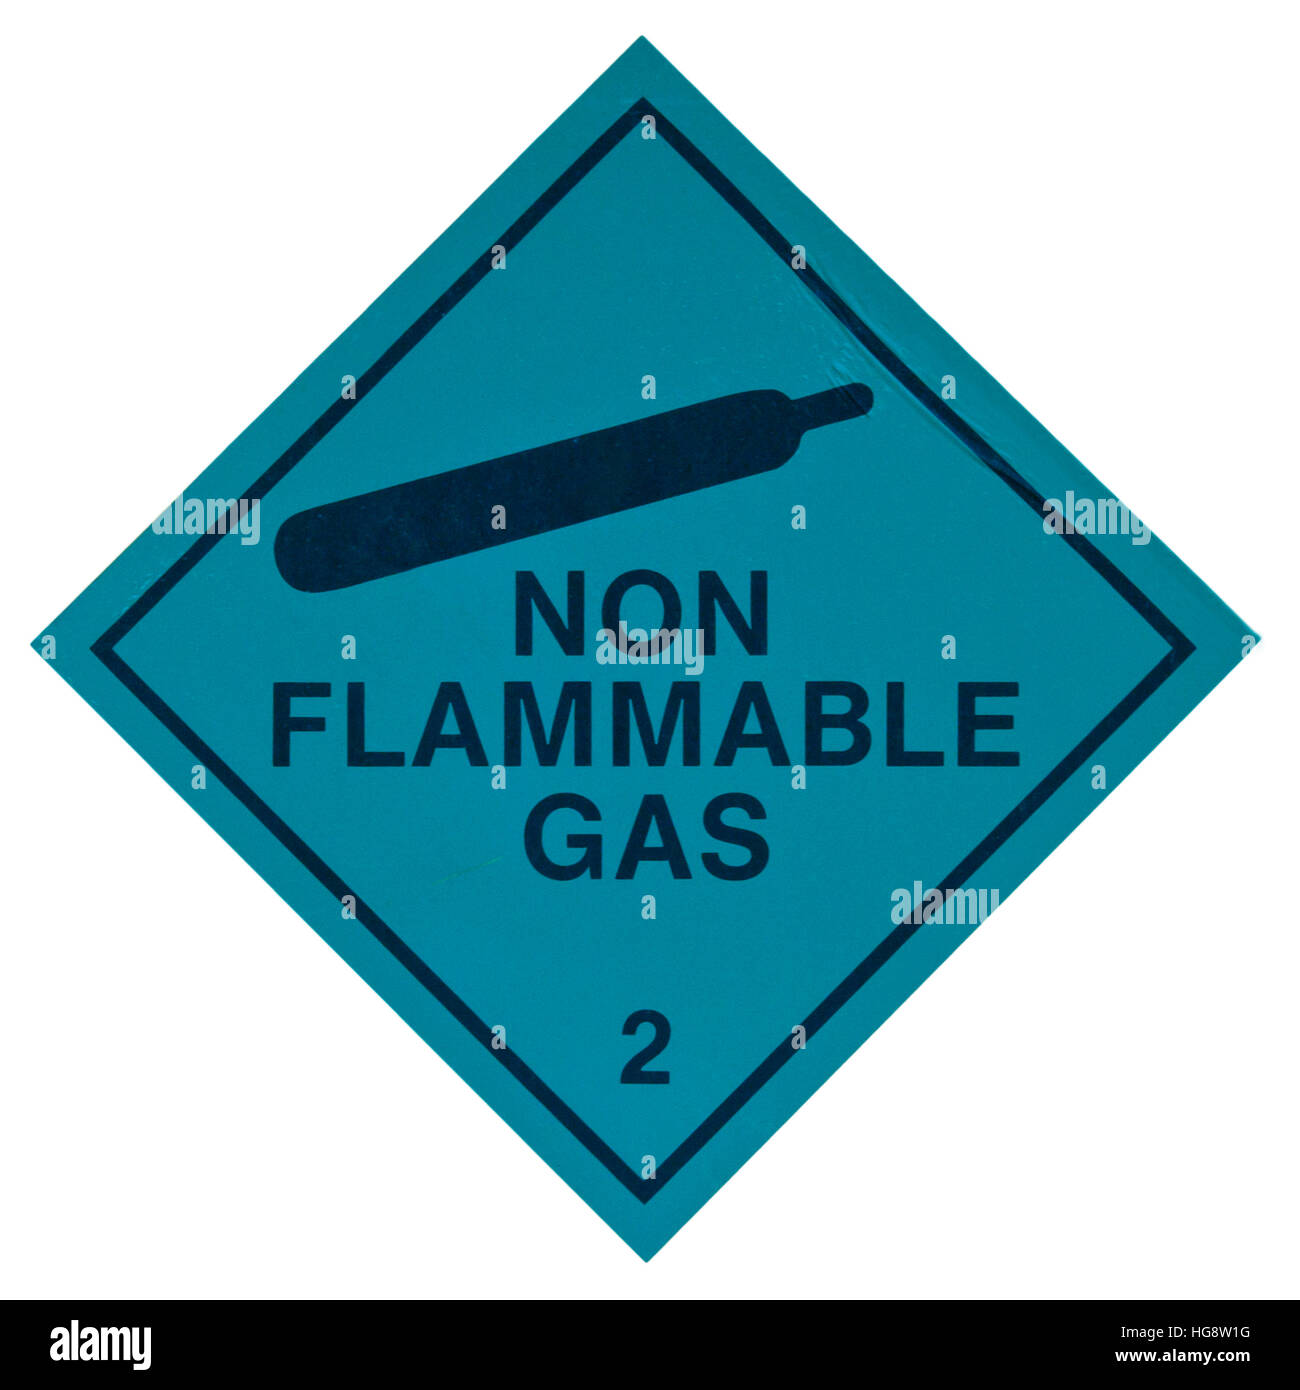 Non Flammable Gas Sign - Stock Image